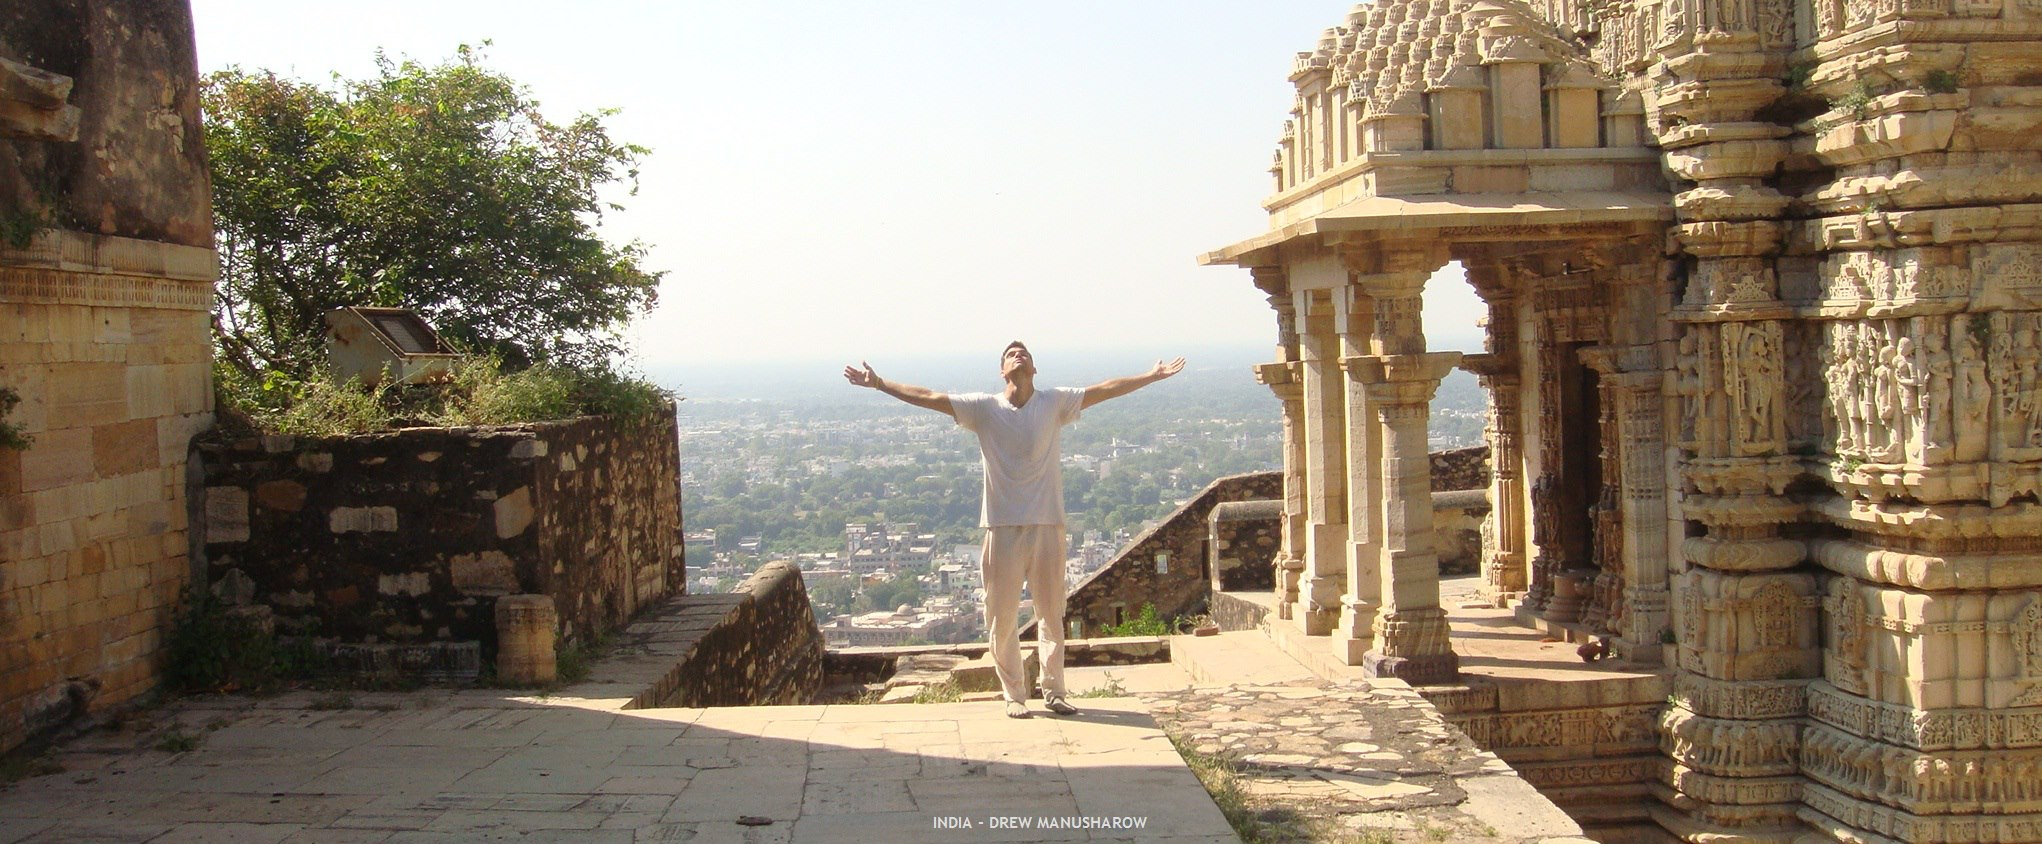 drewmanity backpacker Chittorgarh Fort. meditation